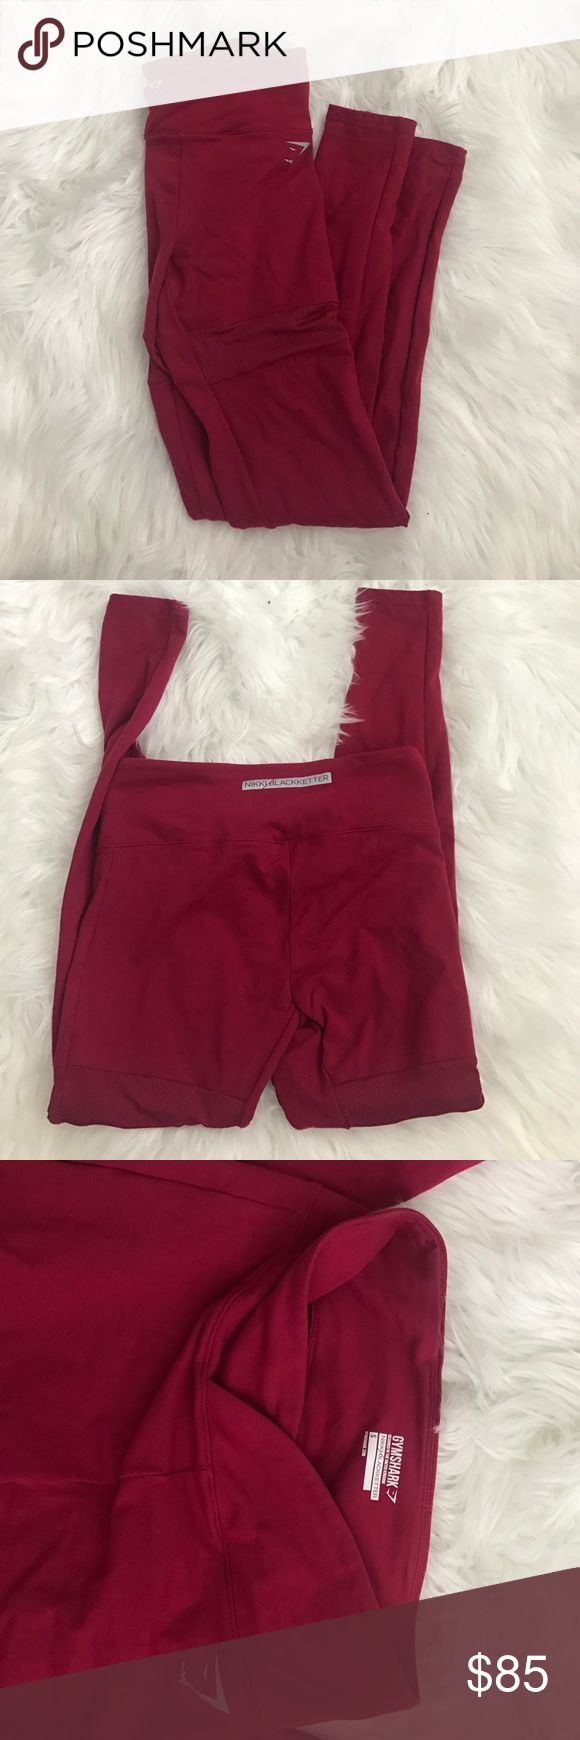 Gymshark x Nikki blackketter leggings Perfect condition, never worn, only tried on. Sold out and never releasing again. gymshark Pants Leggings